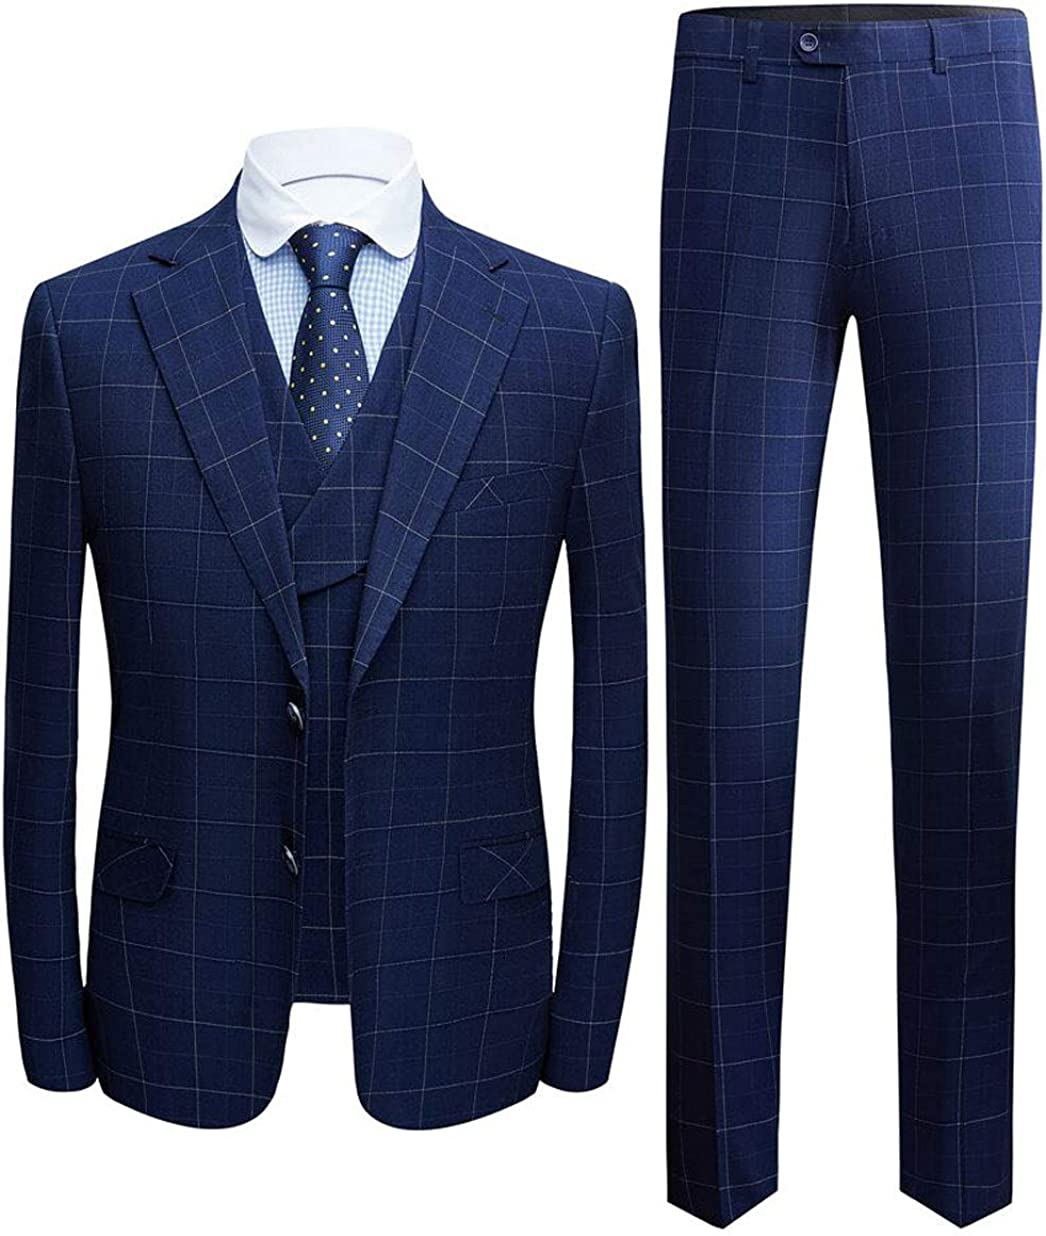 Men's Navy Plaid Notch Lapel Suits 3 PC Two Buttons Wedding Suits Groom Tuxedos Dinner Suits